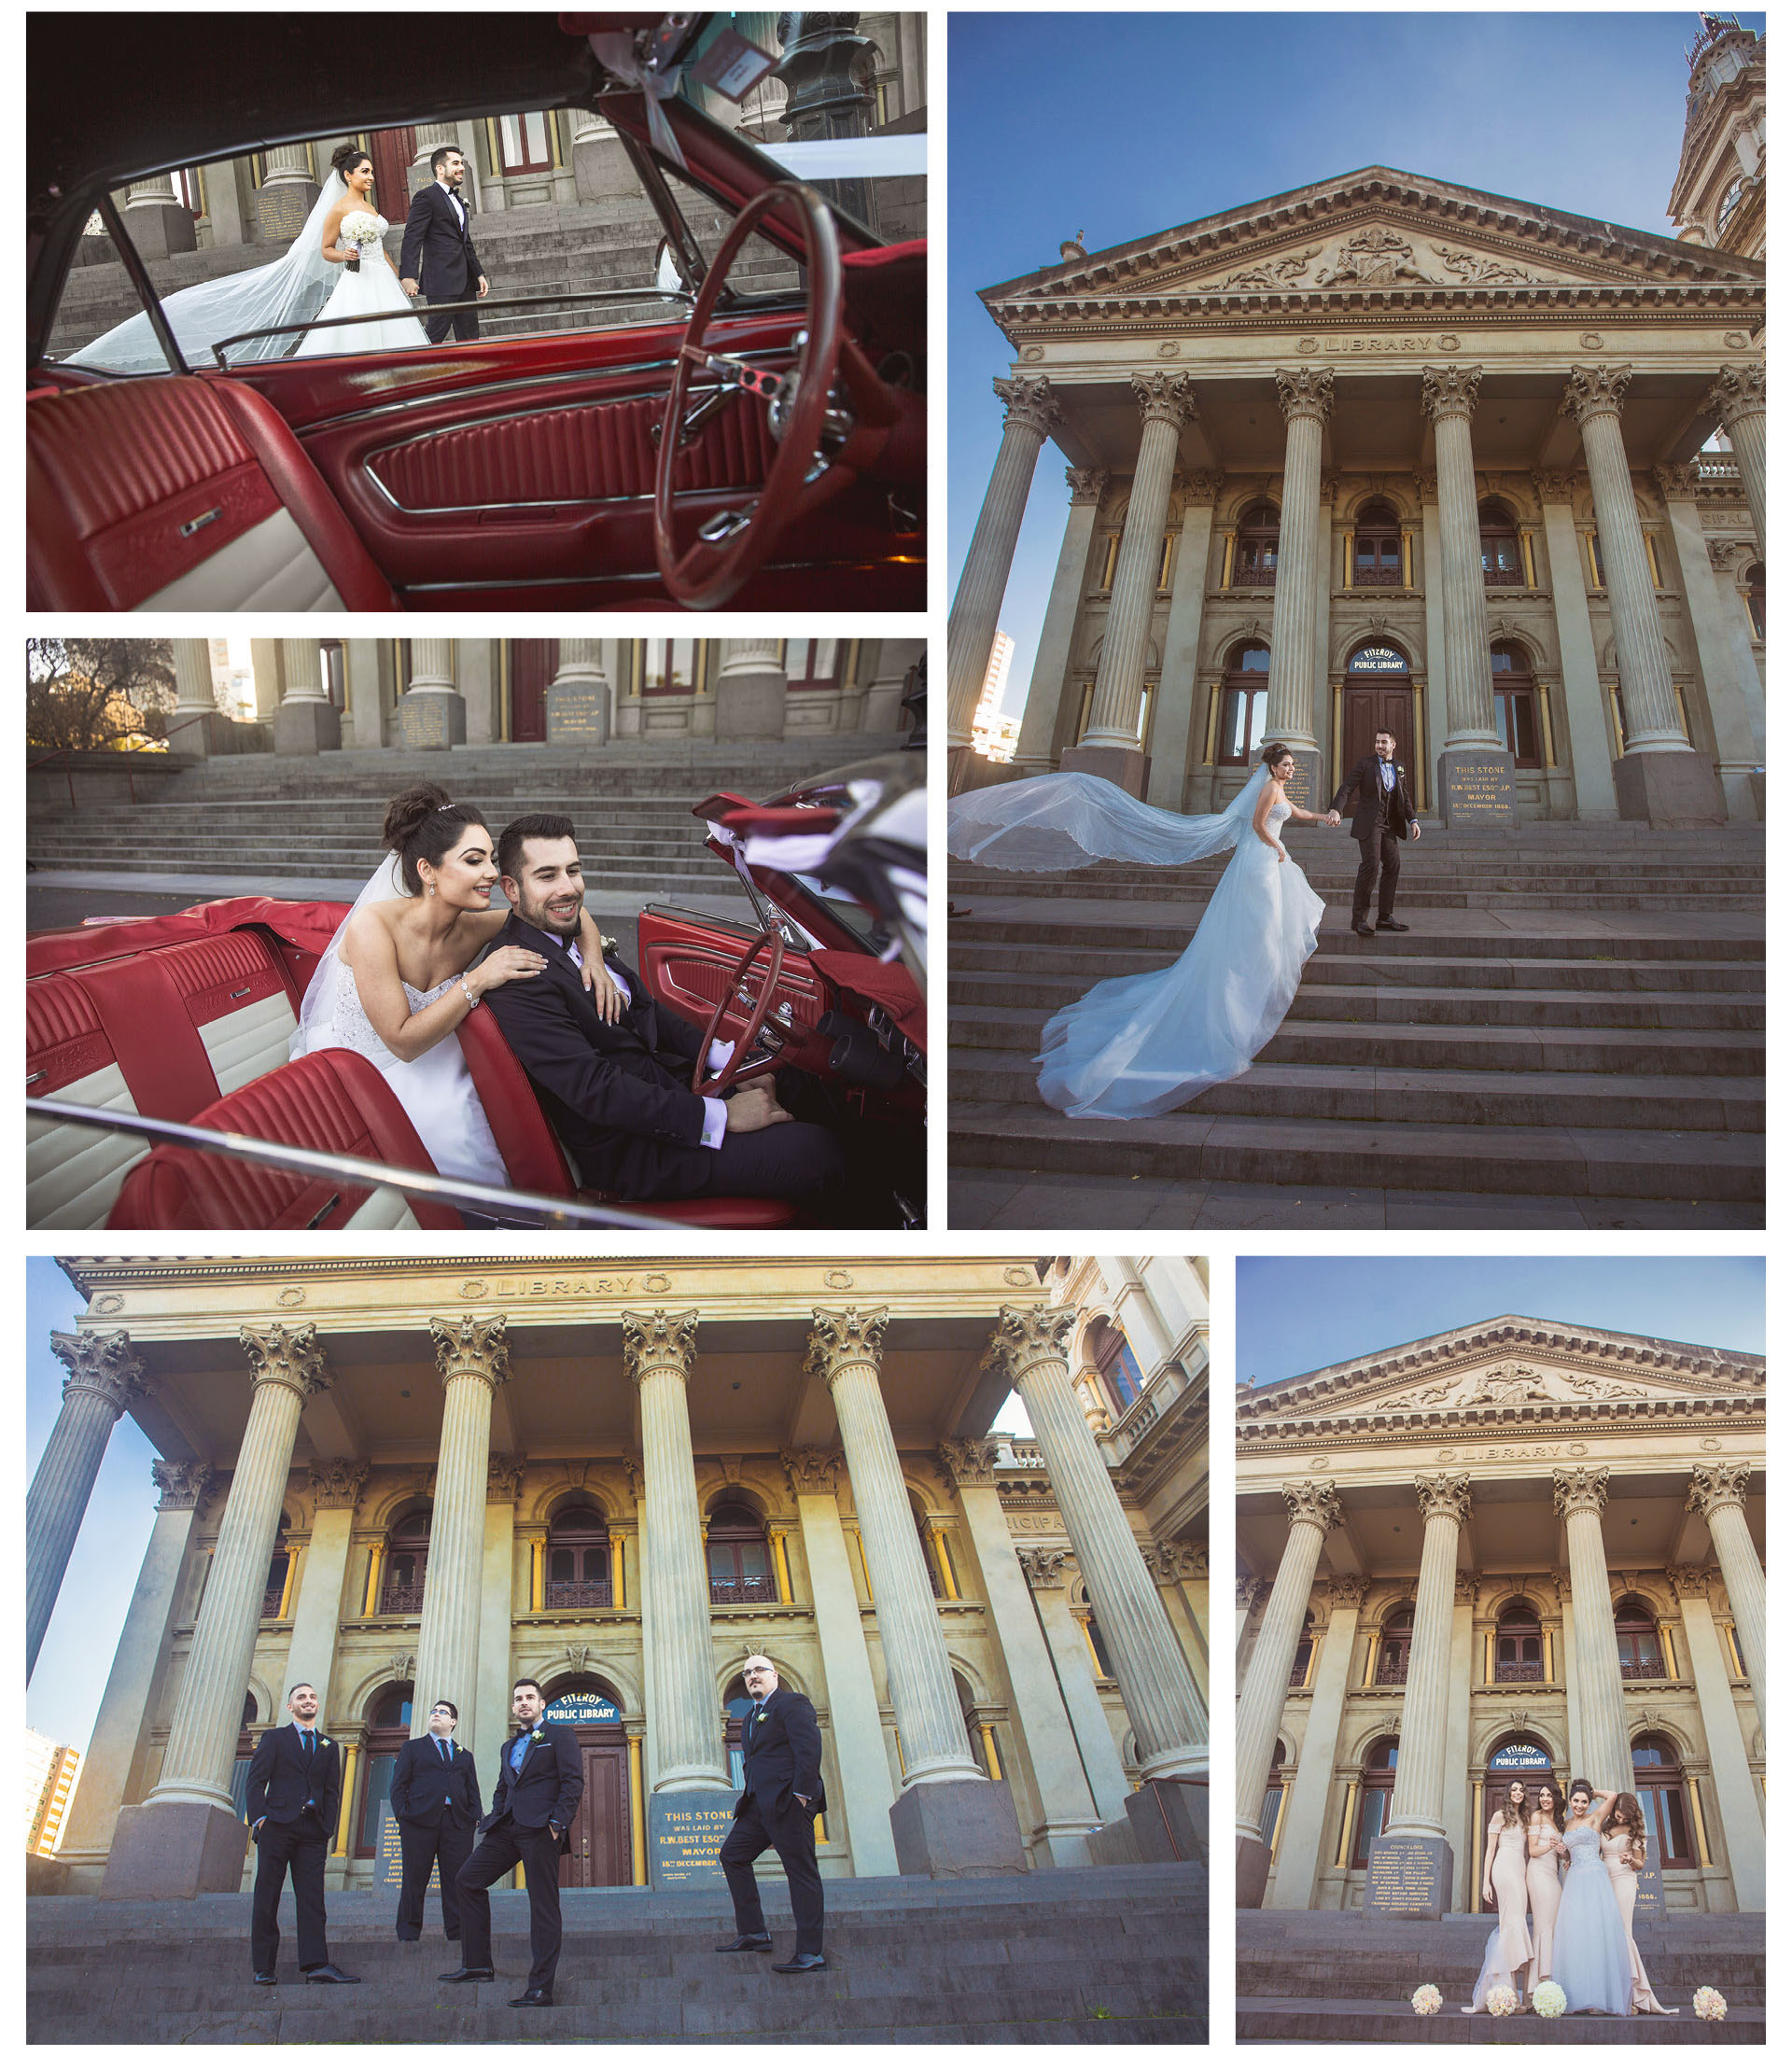 The bride and groom in a classic red convertible car went to the Fitzary town hall to take wedding photos